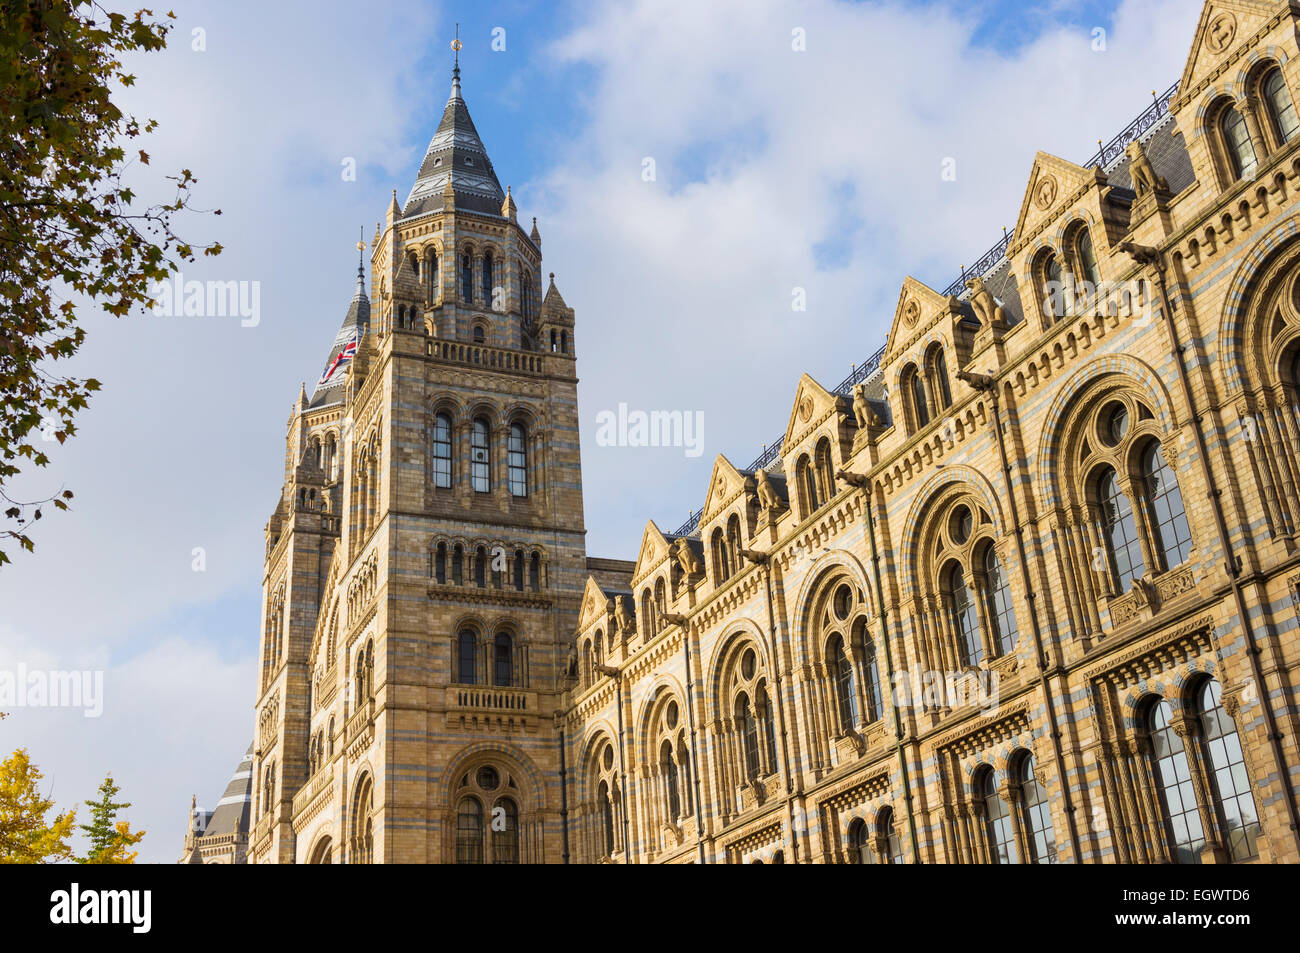 Natural History Museum, London, England, UK - building exterior - Stock Image